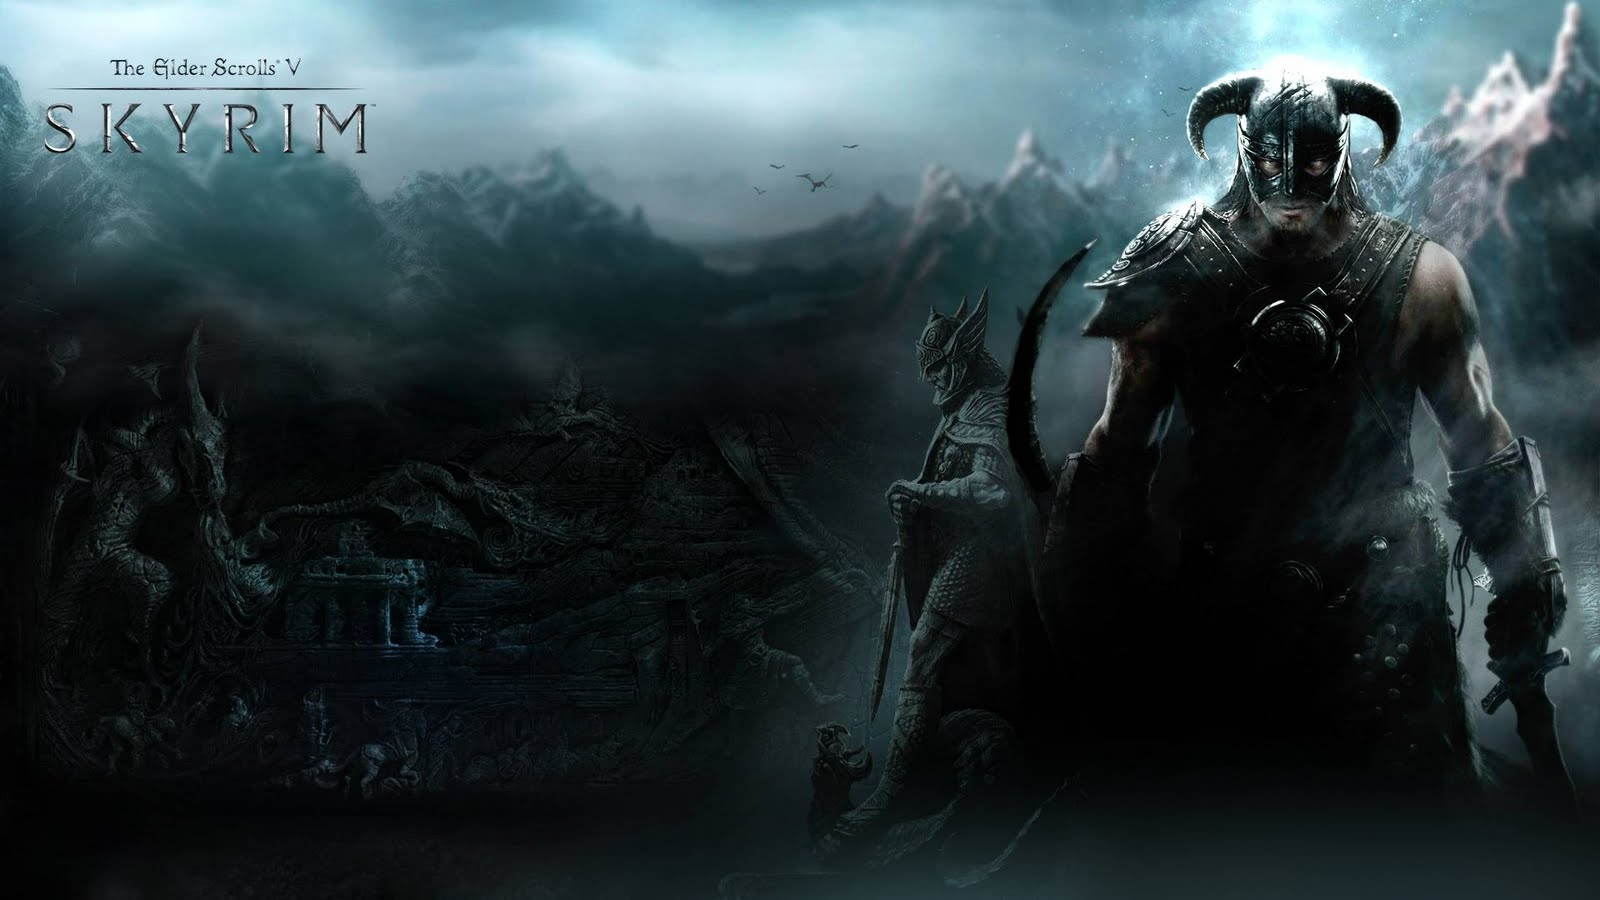 the elder scrolls v skyrim header 05012013